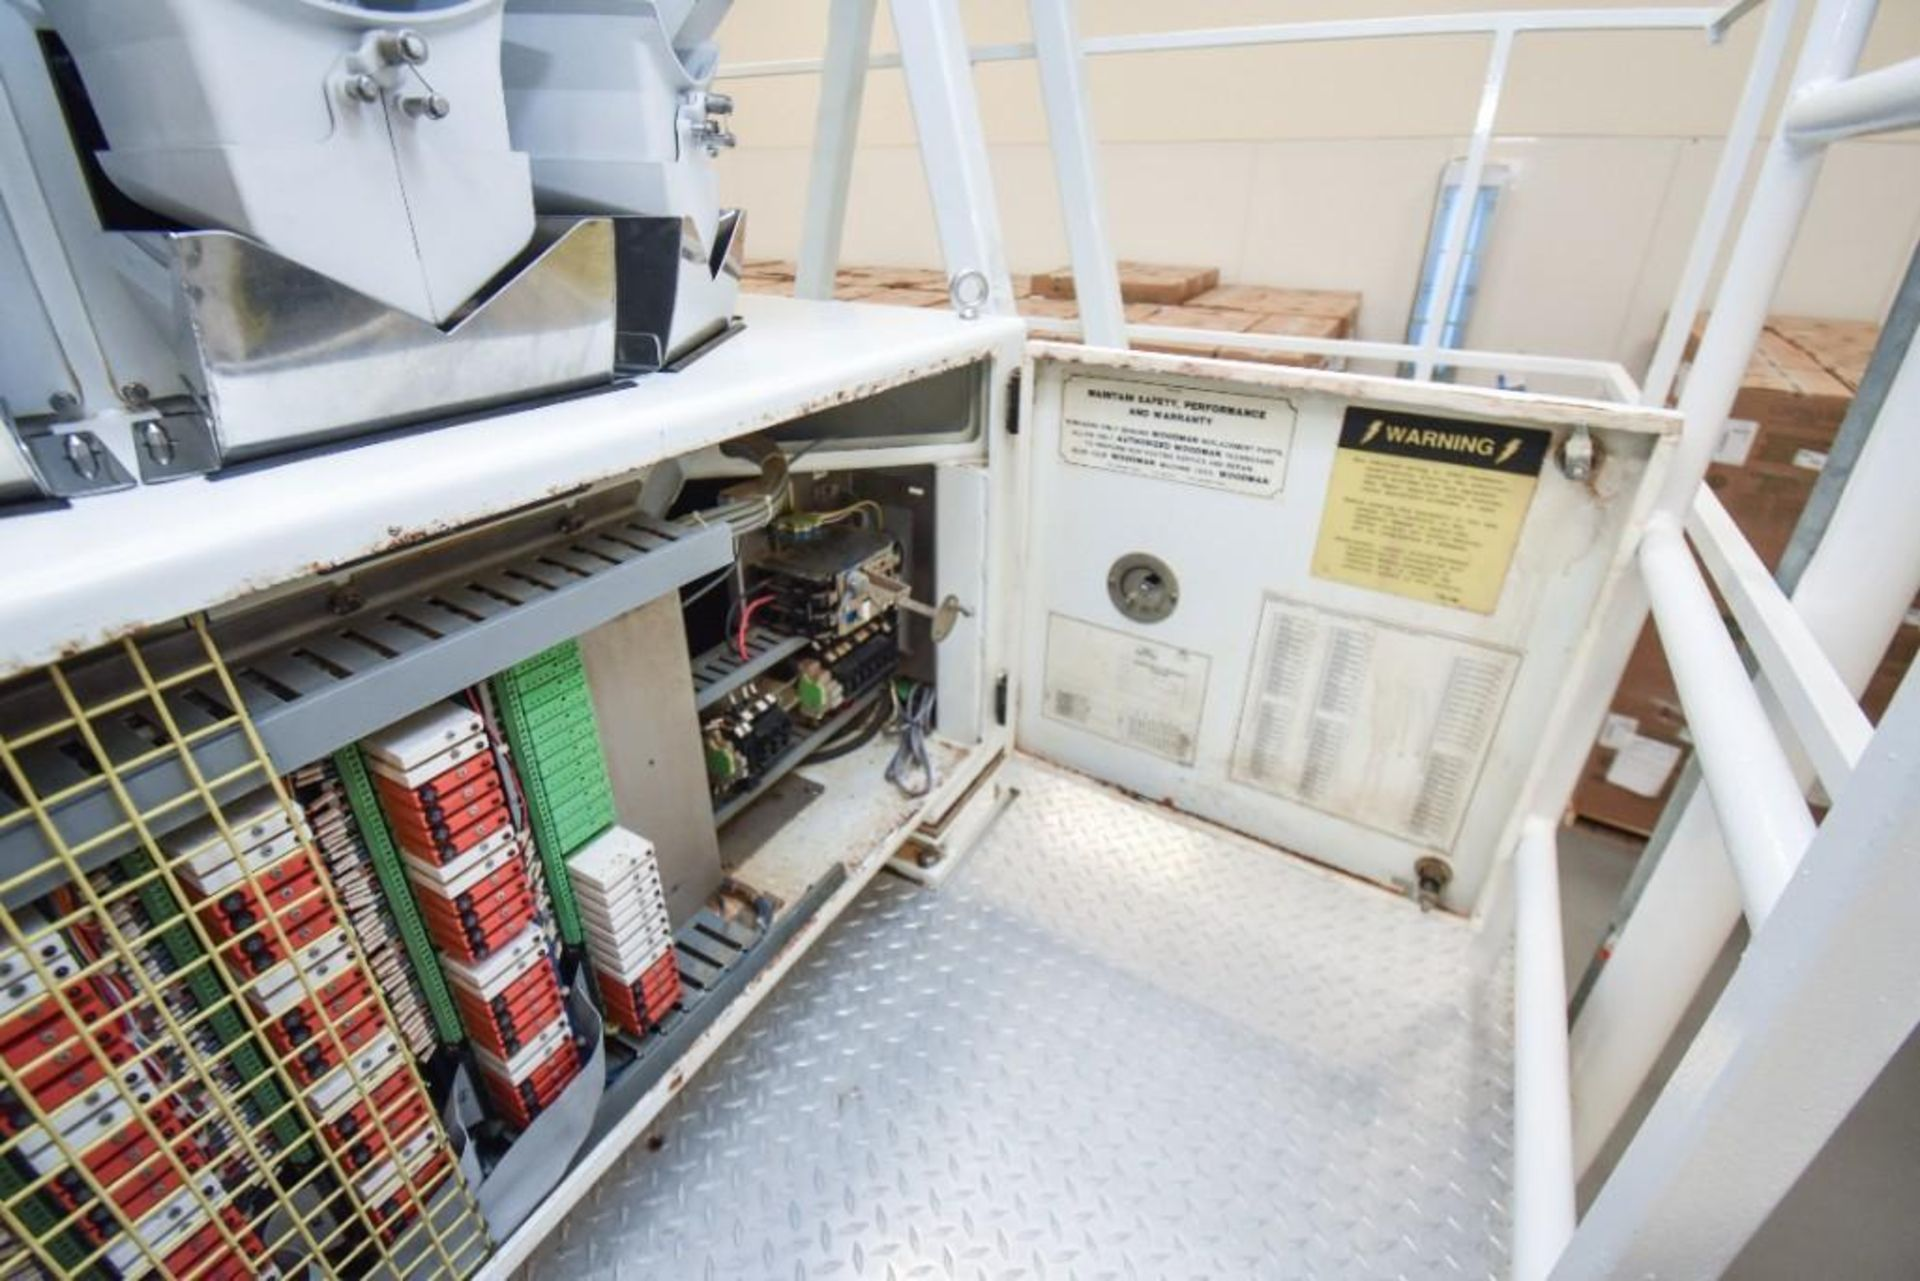 Woodman Spectra Weigh Scale With Vibratory Feeder - Image 7 of 14